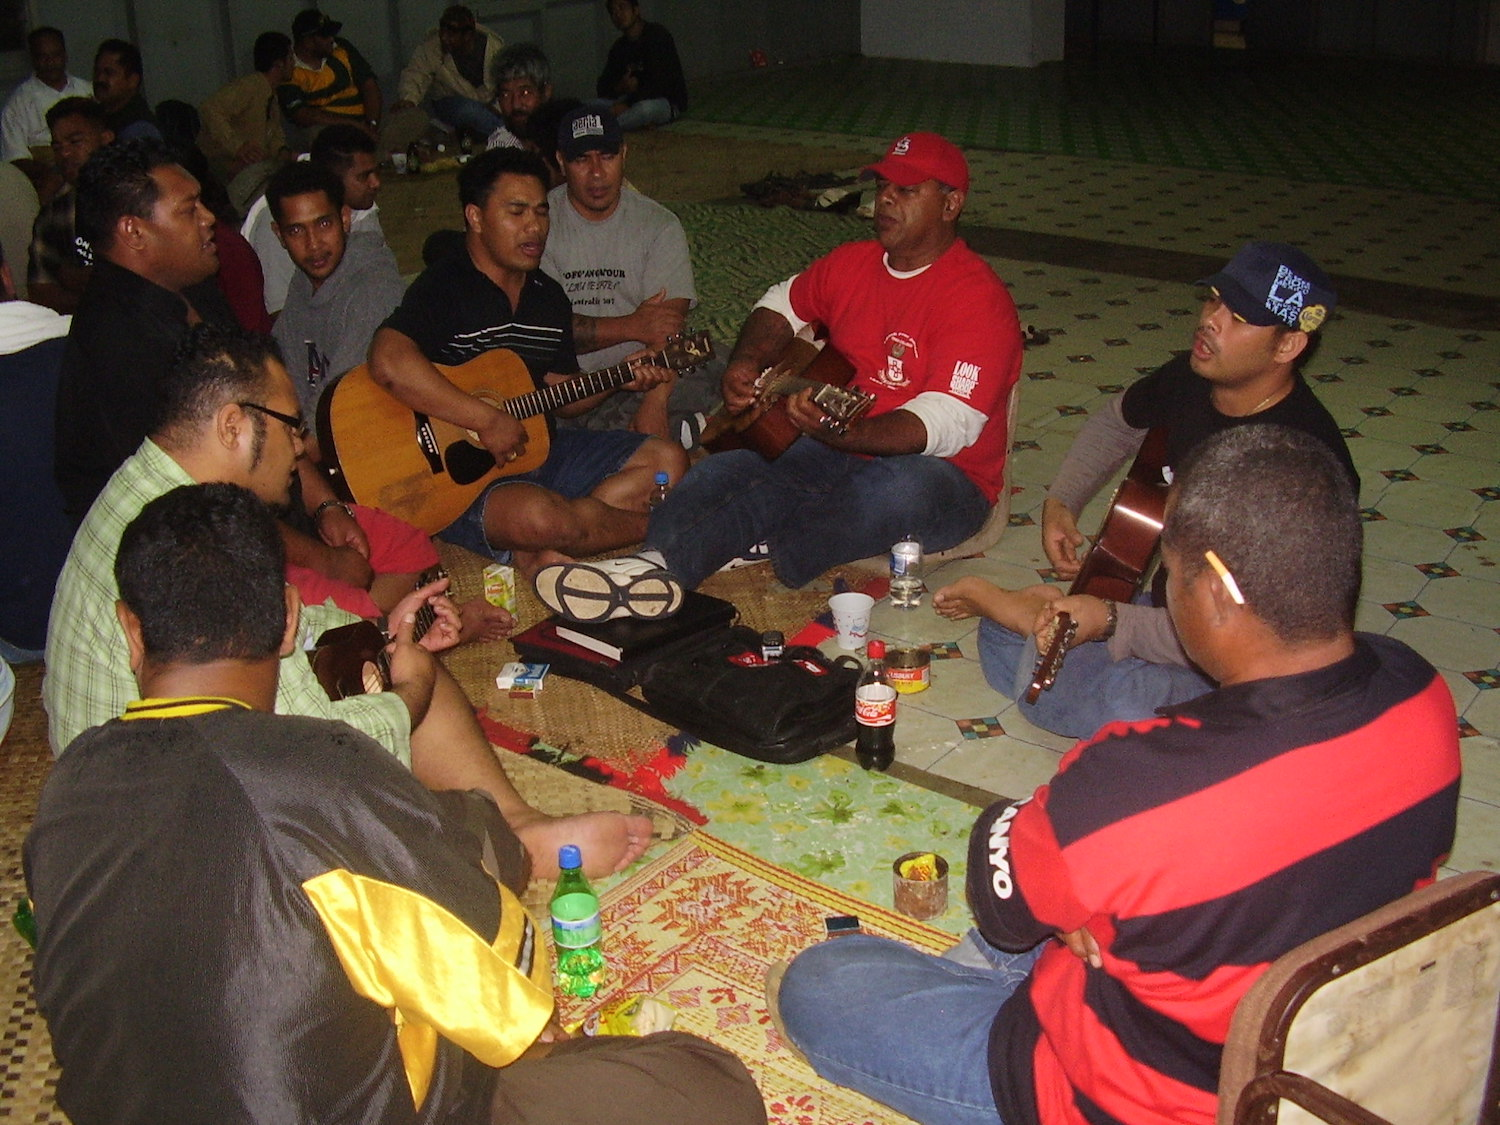 Pic: Kava induced sing-along time